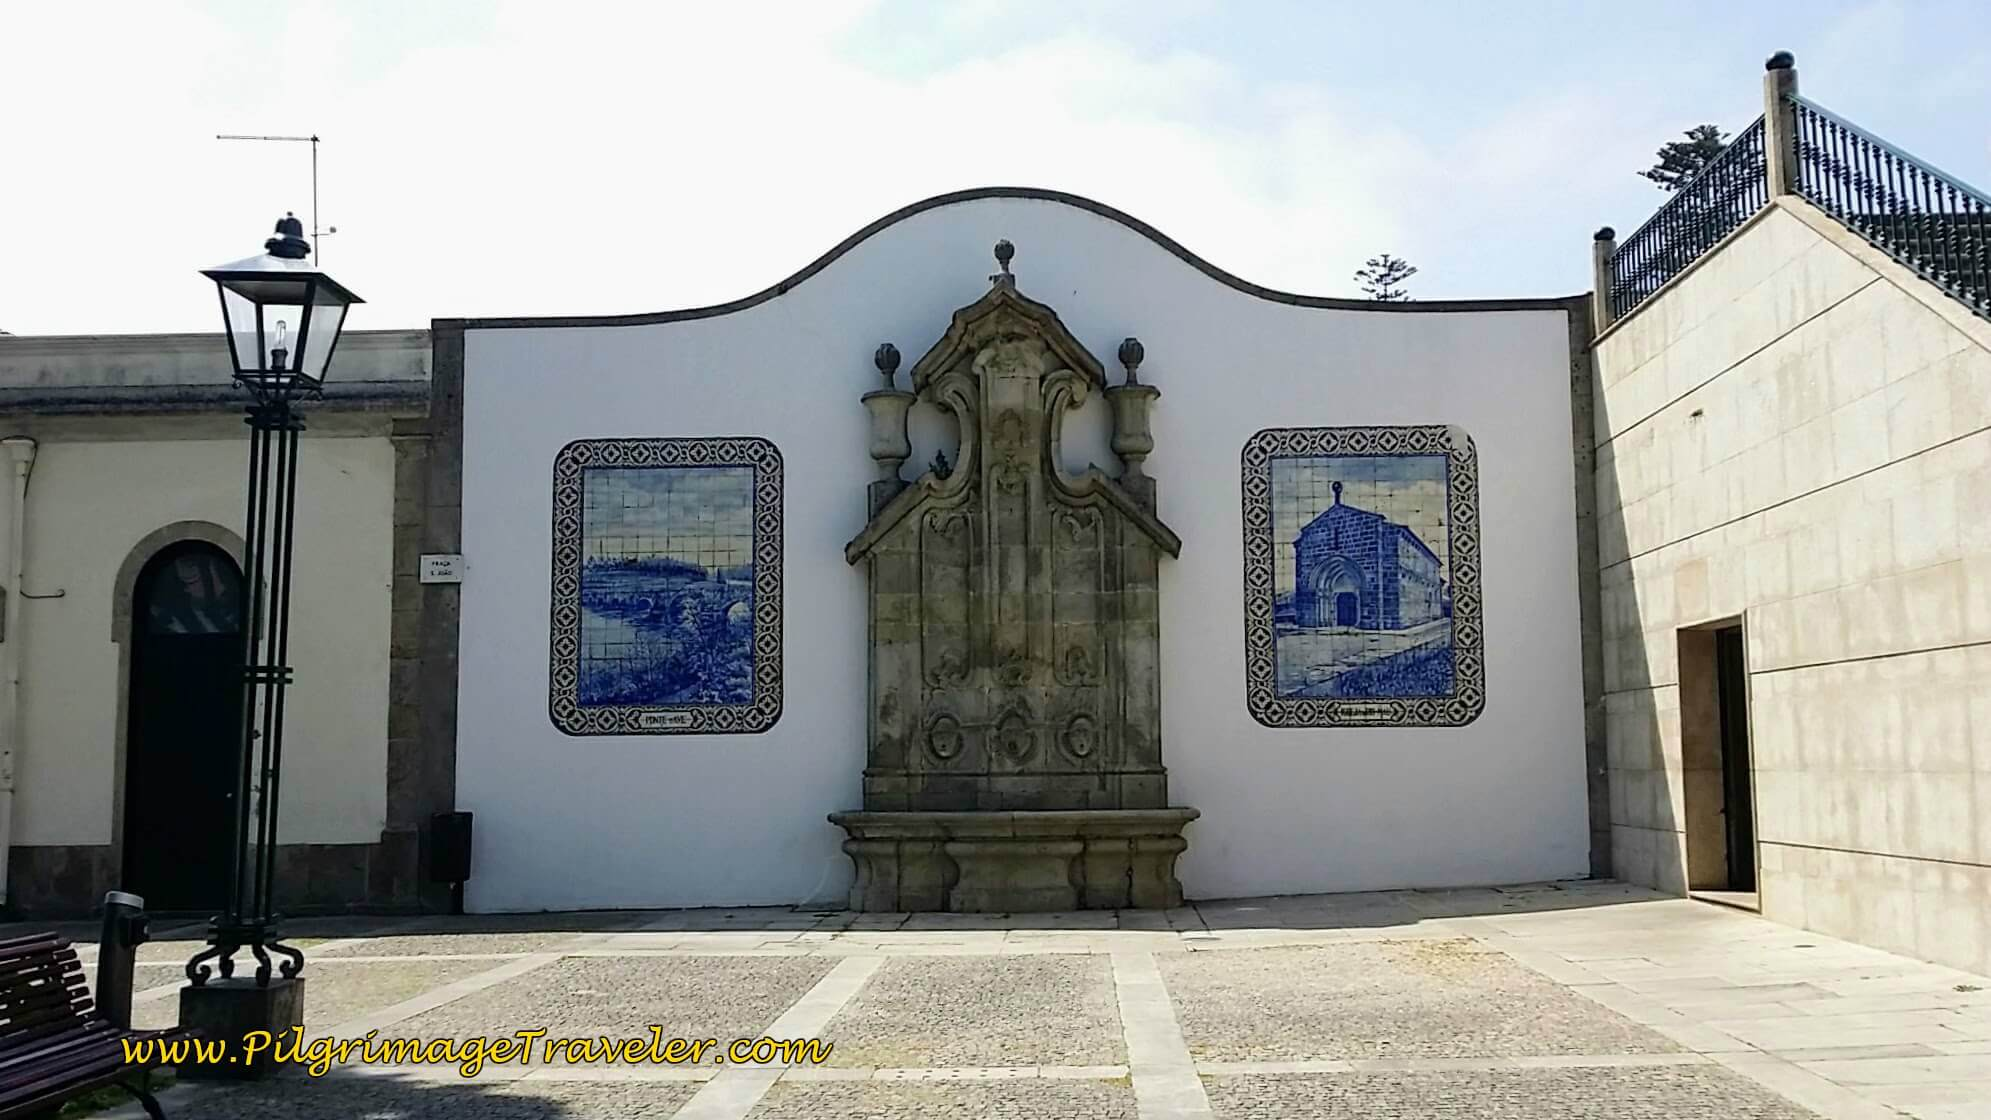 Fountain with Murals in the Praça de São João, Vila do Conde, Portugal on day fifteen of the Camino Portugués